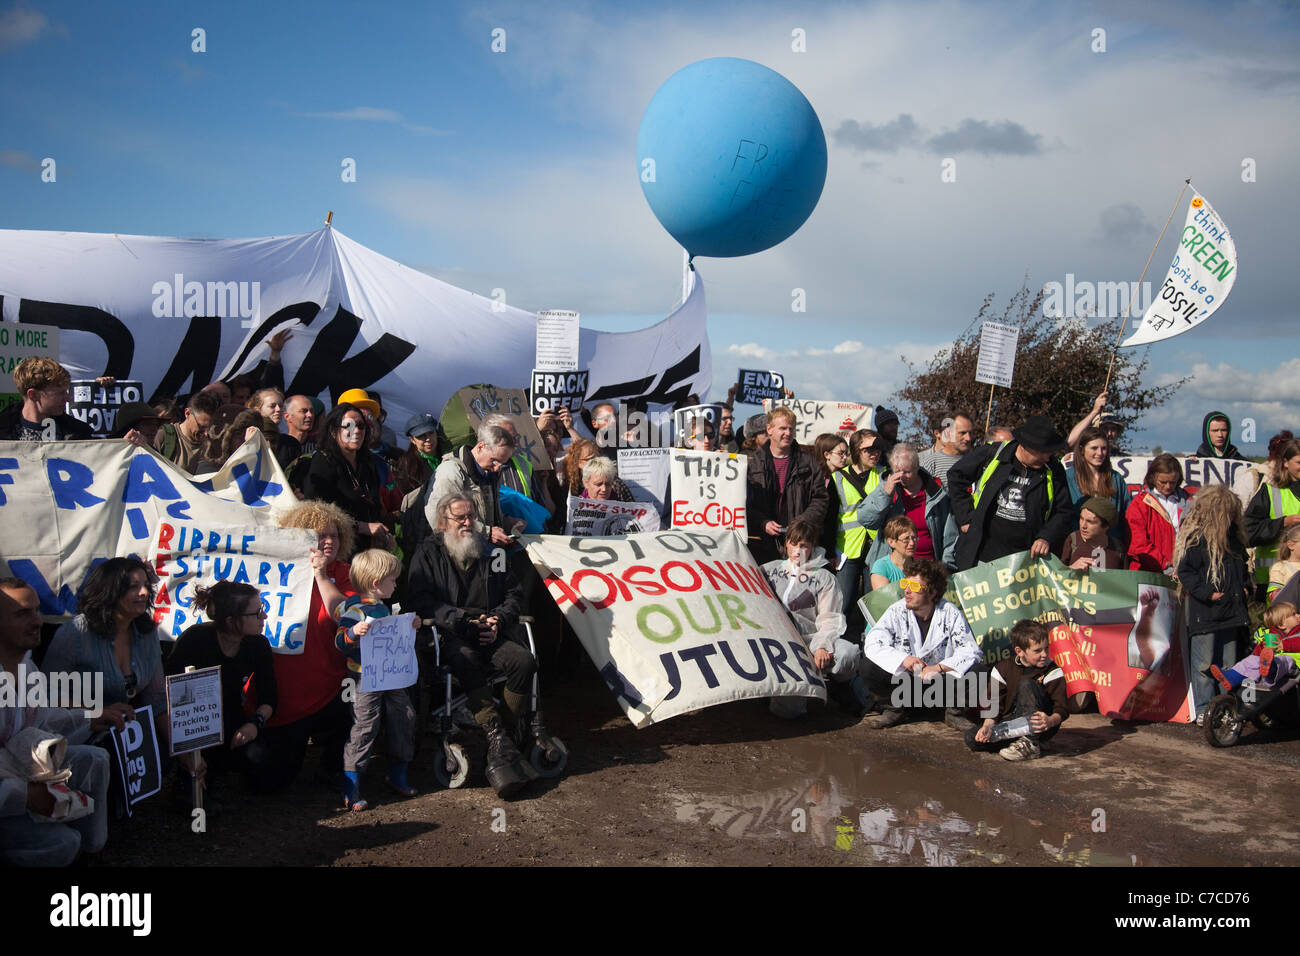 Camp Frack_Protest Encampment & March against Hydraulic Water Fracturing & Shale-gas production at Becconsall, - Stock Image